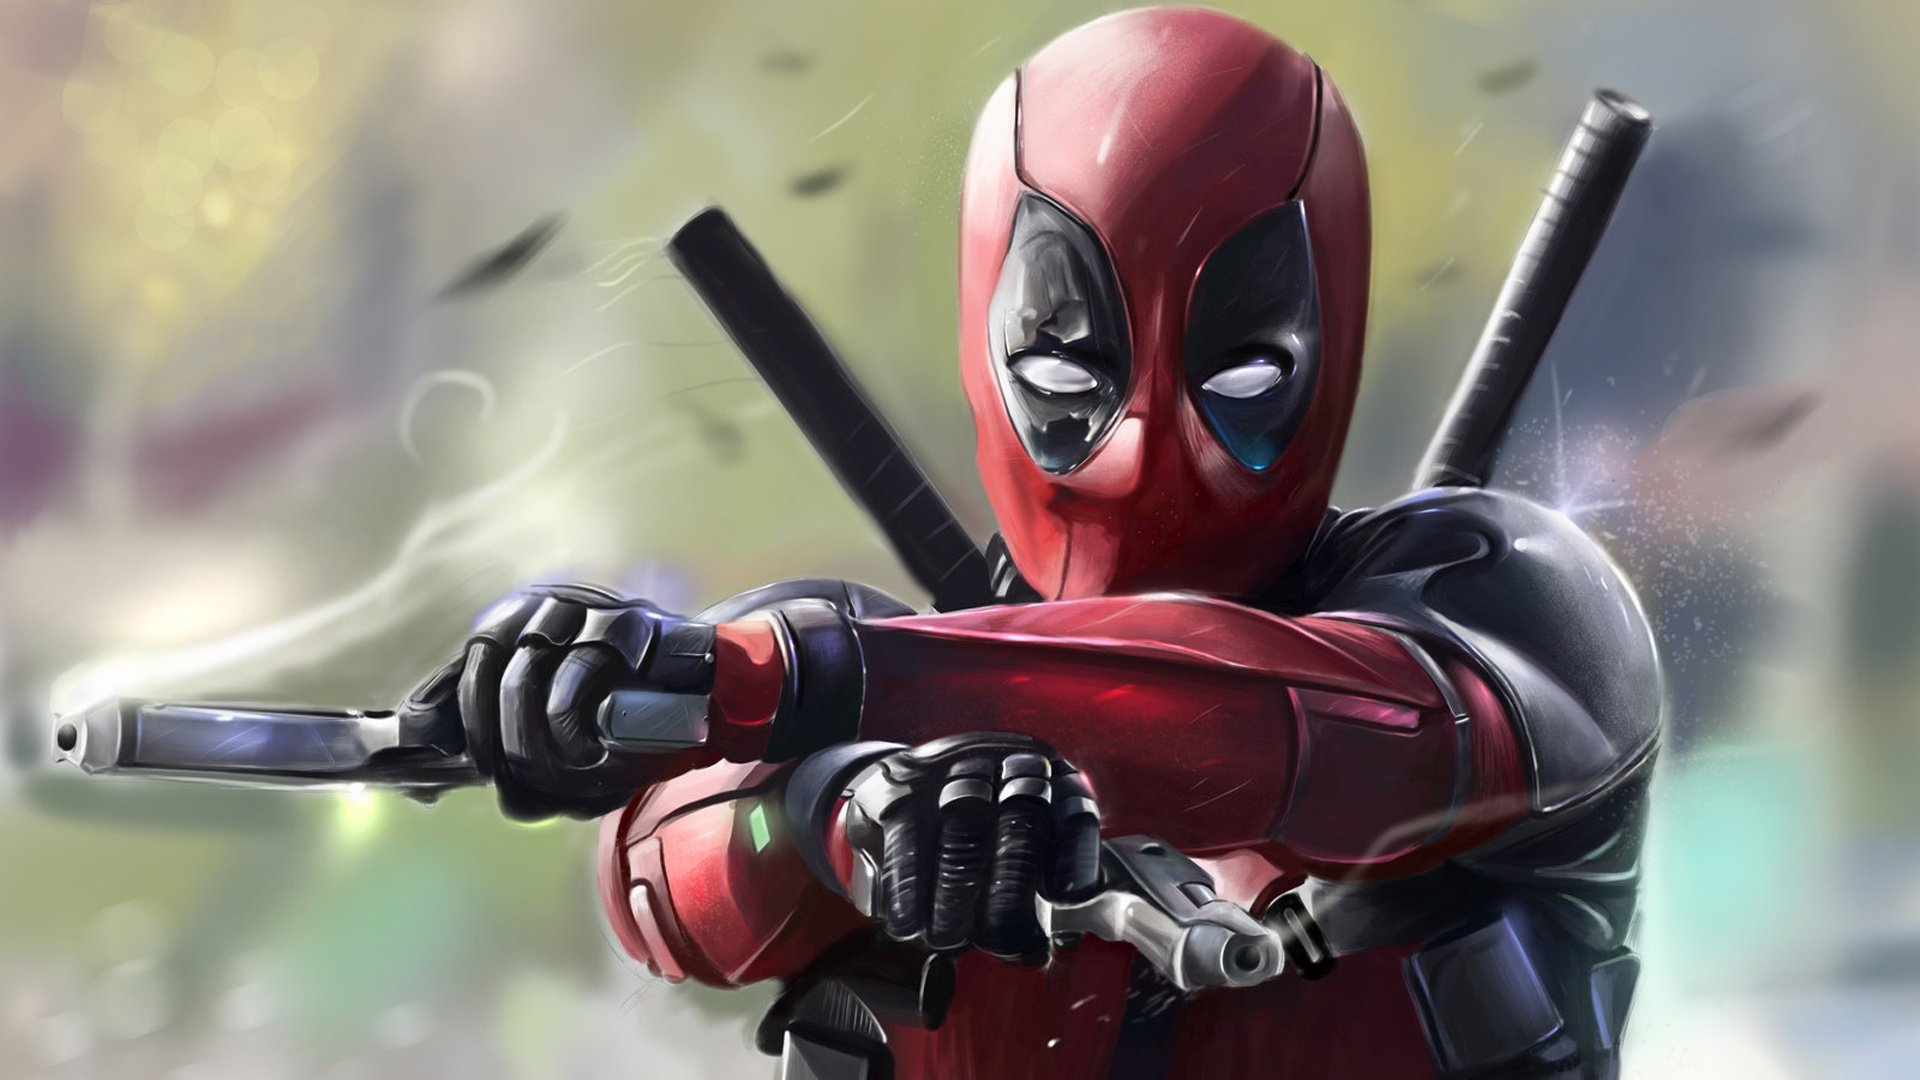 Deadpool wallpaper hd wallpapersafari for Deadpool wallpaper 1920x1080